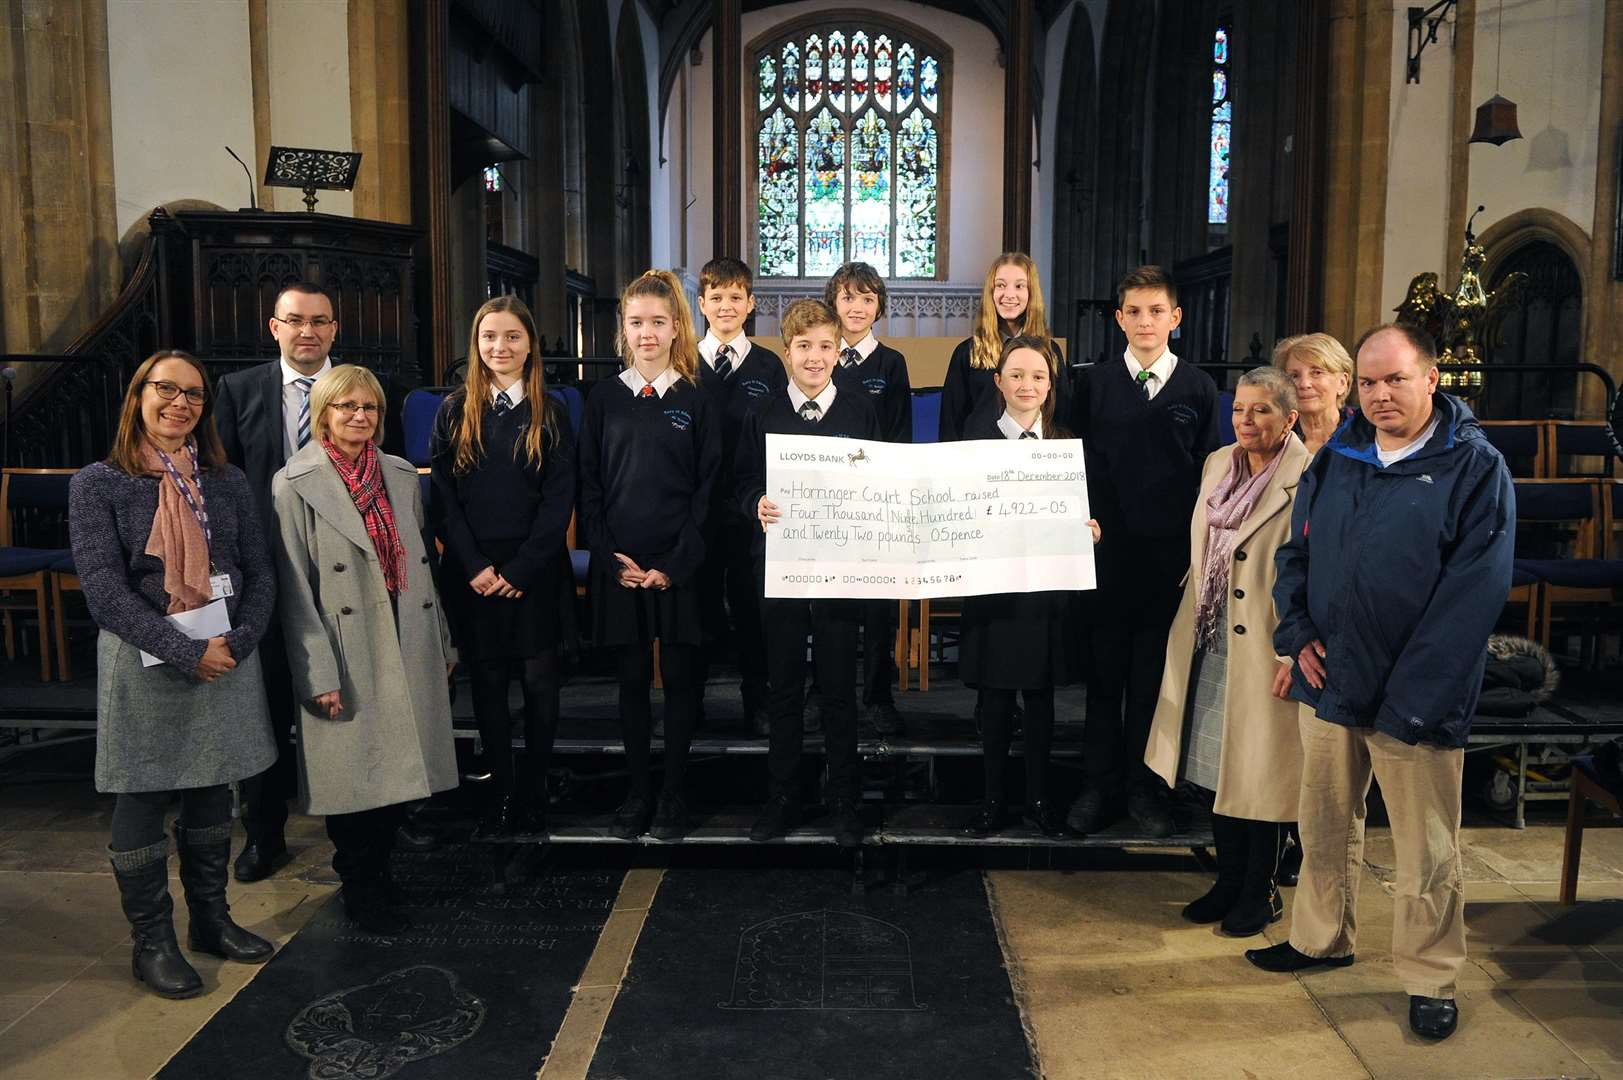 Horringer Court School carol service with a cheque presentation to three charities. PICTURE: Mecha Morton.